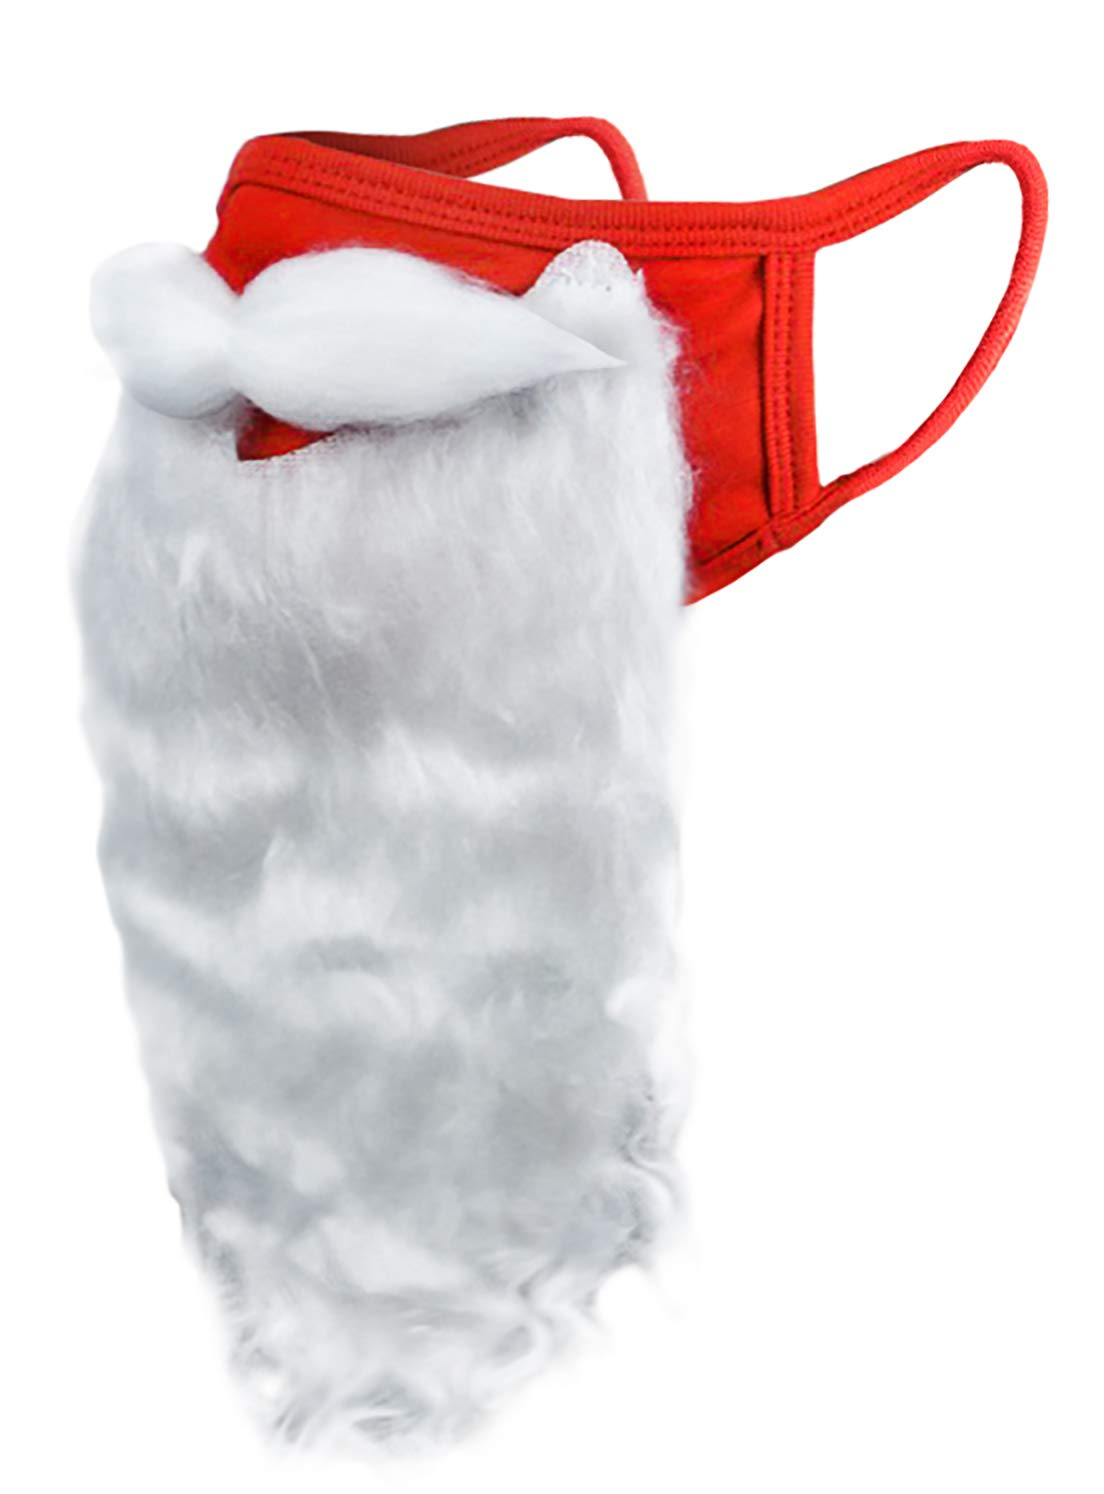 Encased Face Mask Funny Bearded Holiday Santa Costume for Adults for Christmas 2020 (One size fits all)